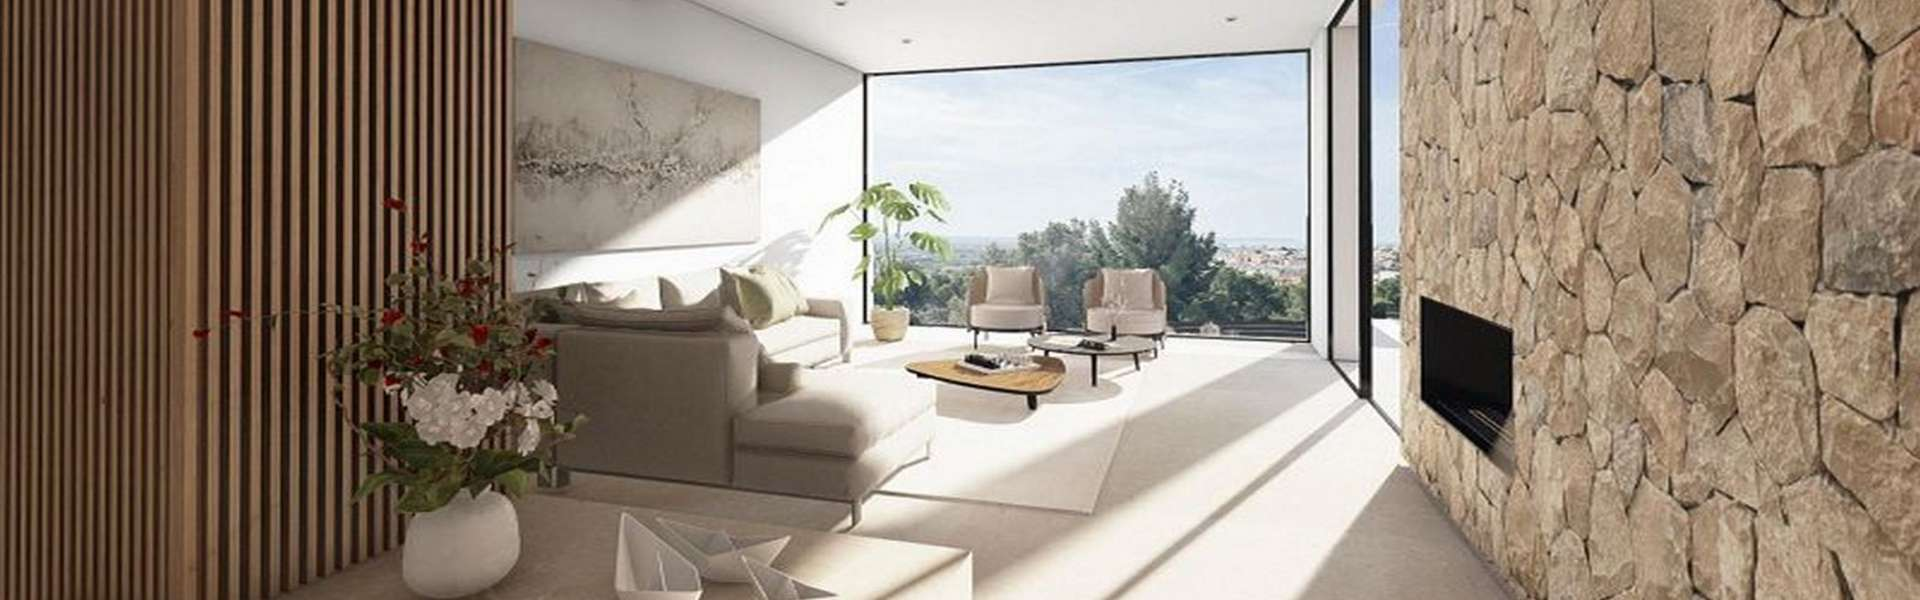 New build villa with wide views over the bay of Palma